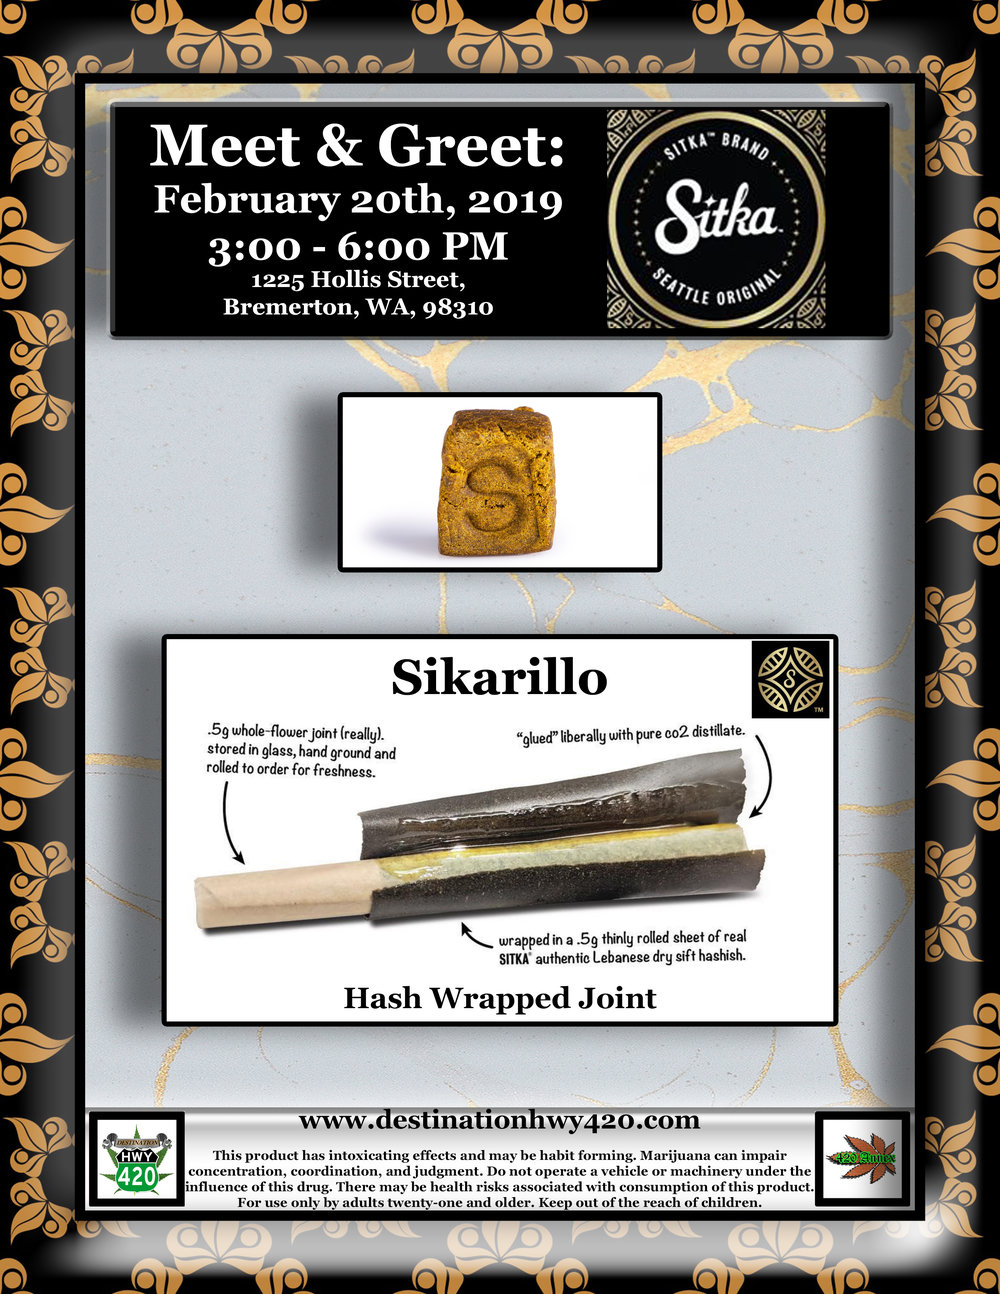 Sitka-Meet-&-Greet-Flyer022019.jpg